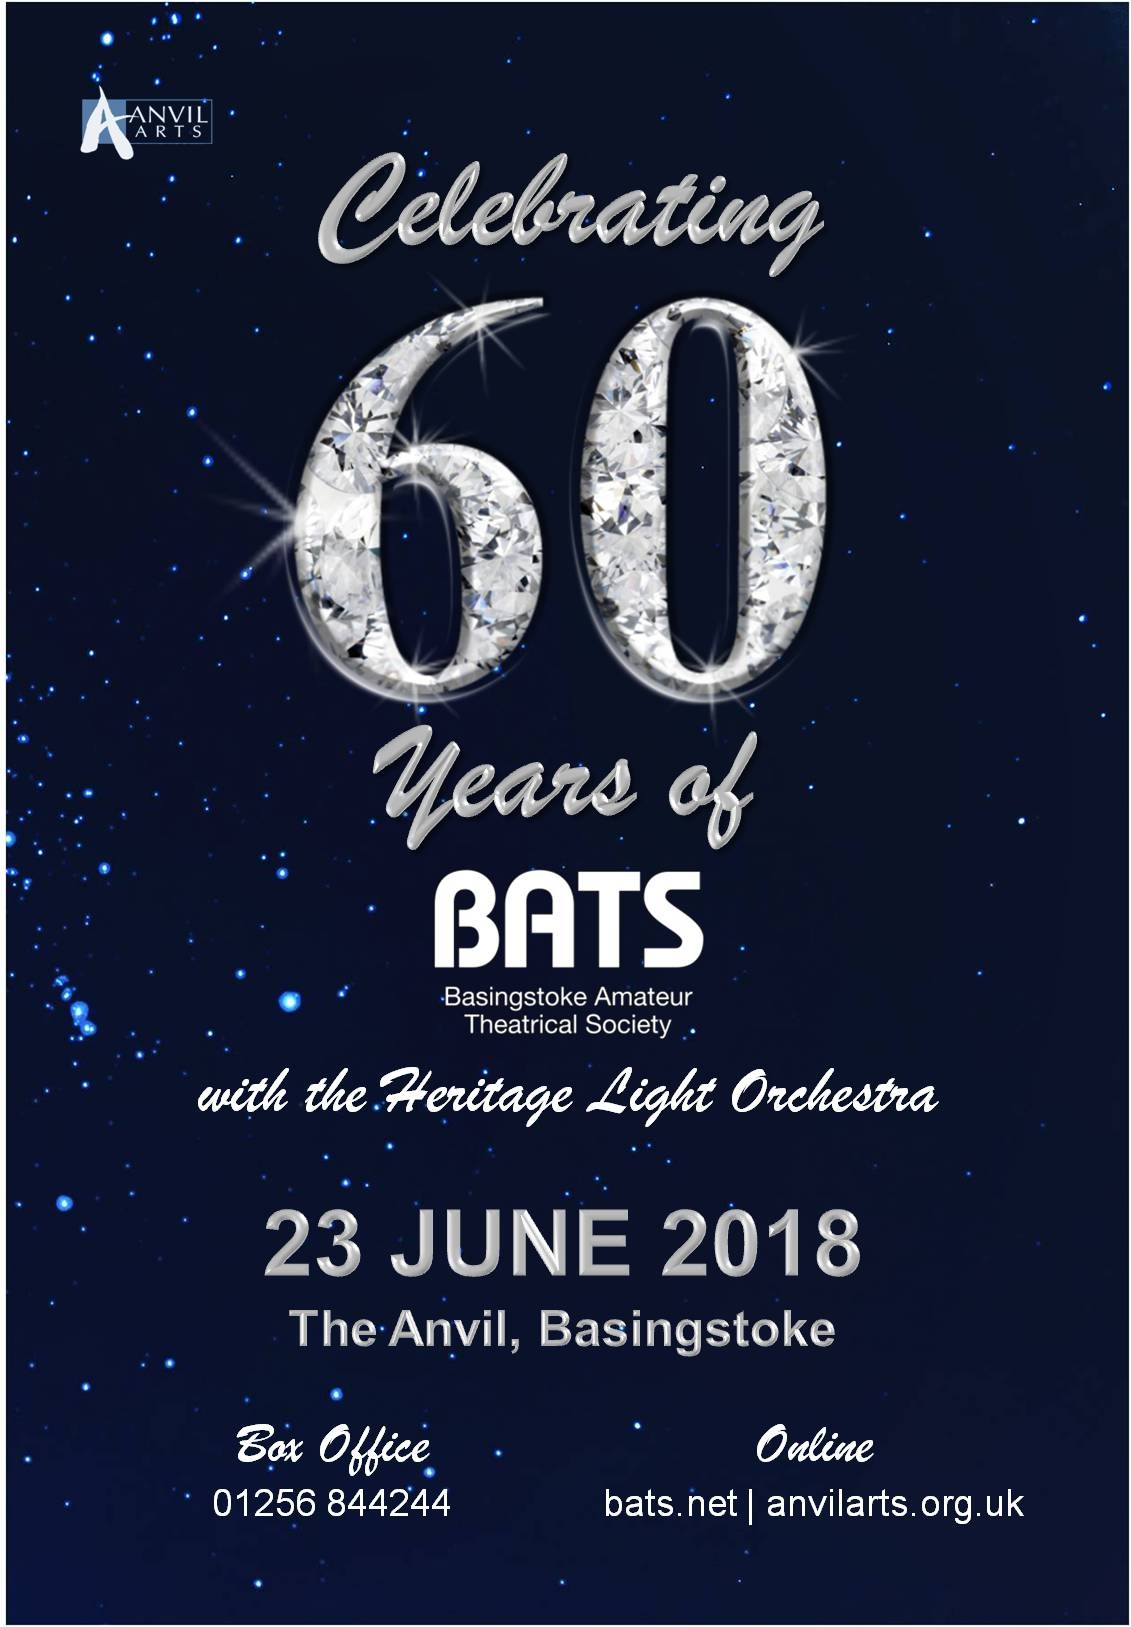 60th Anniversary Concert Poster.jpg